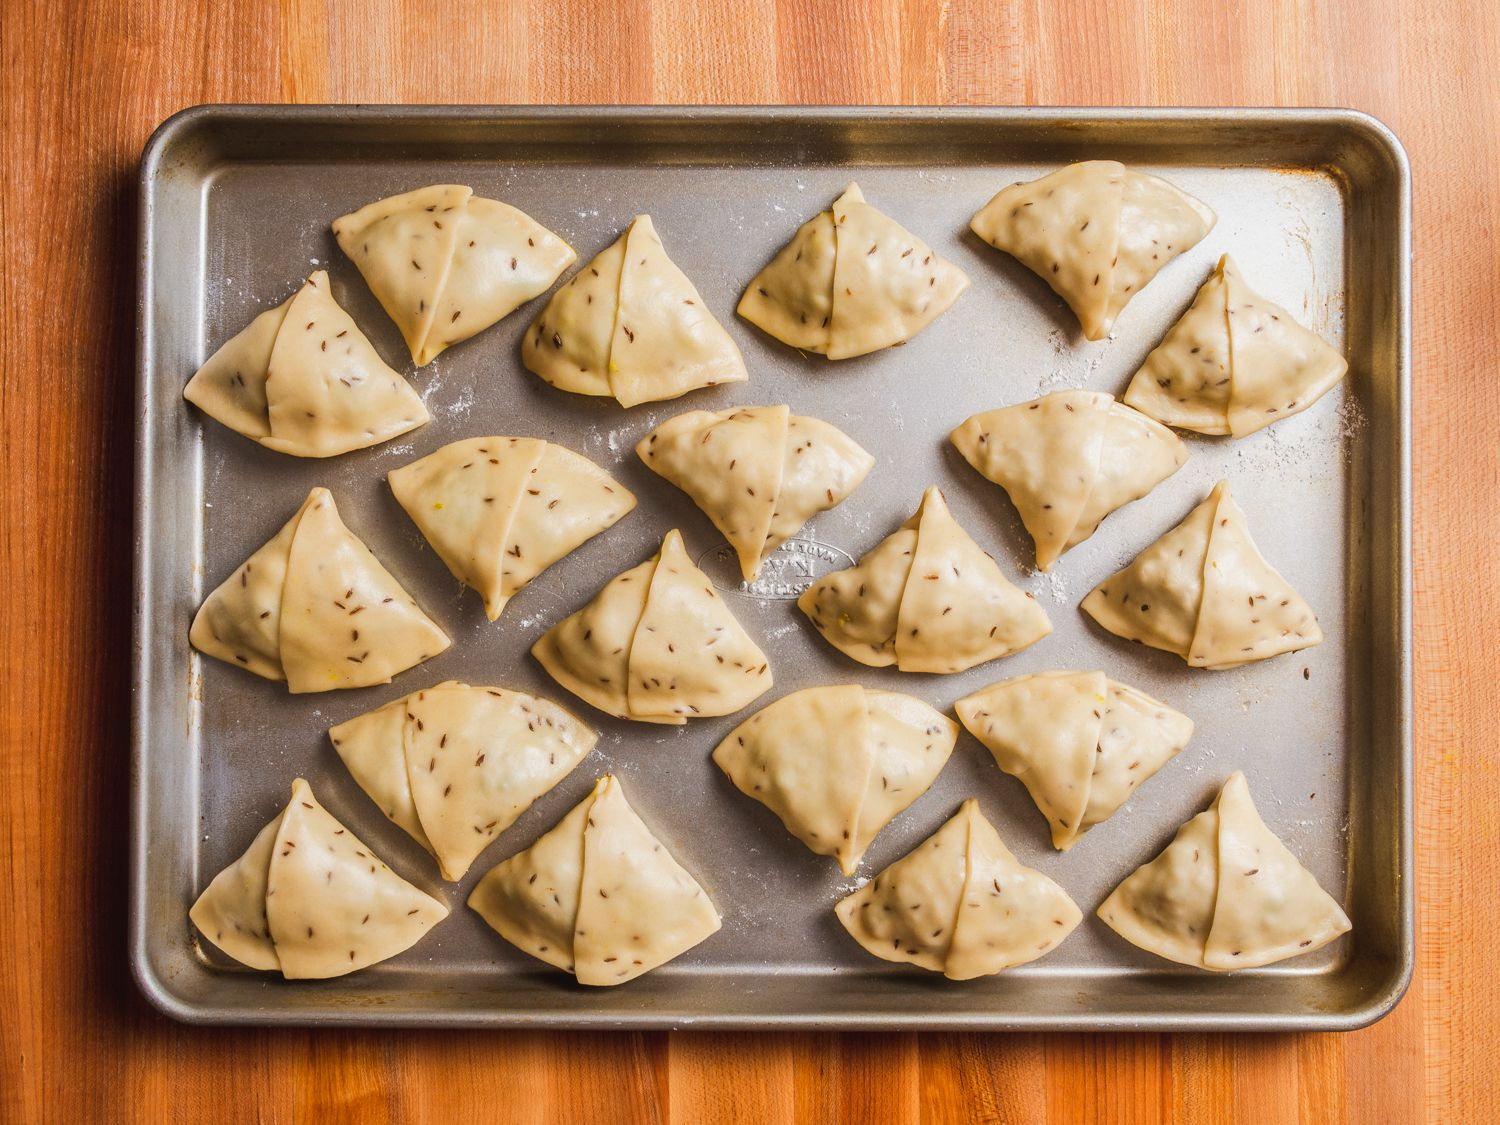 Wrapped samosas on a lightly floured baking sheet, ready for frying